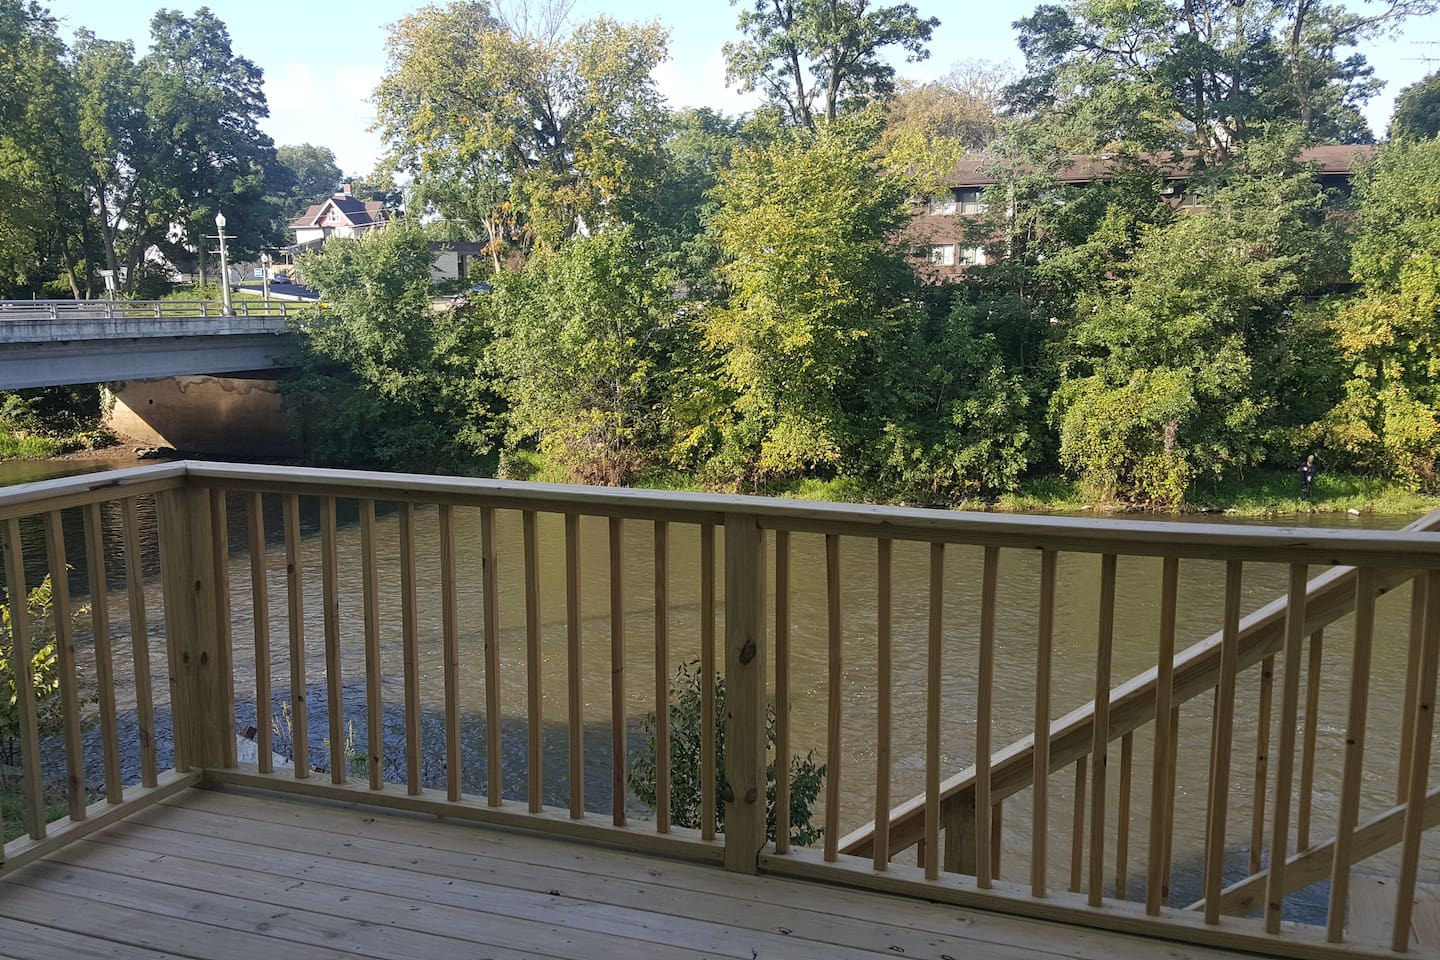 Deck View of the Sugar River